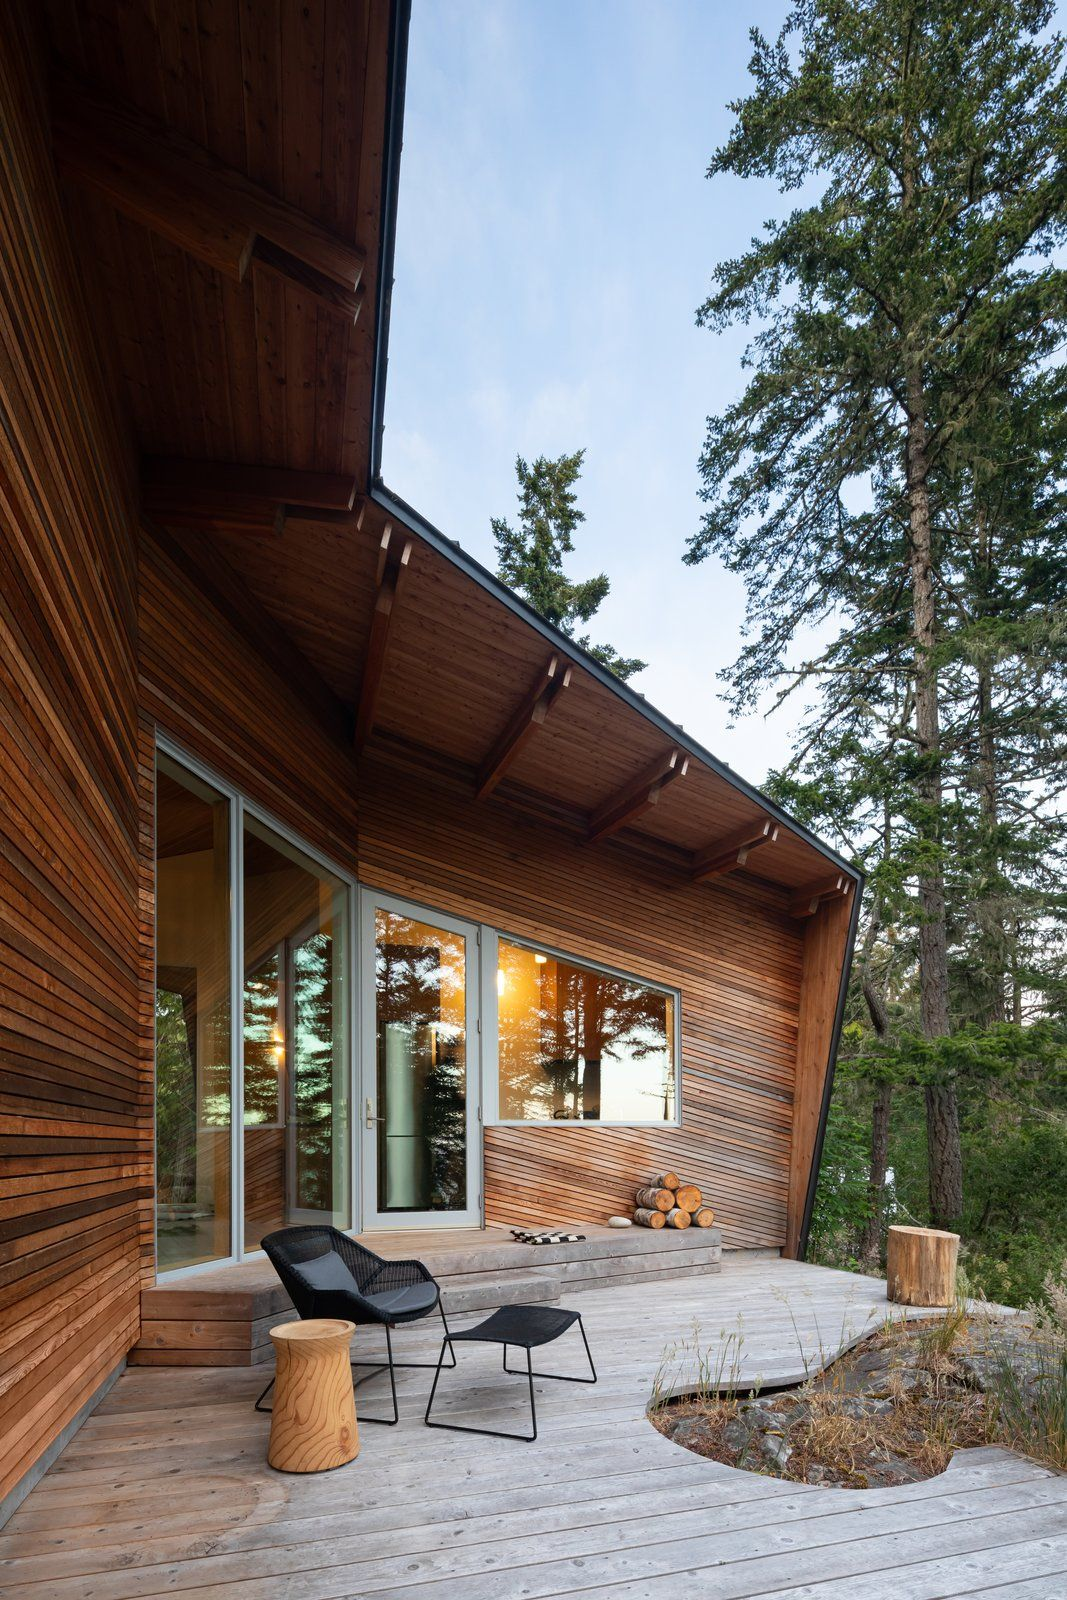 Cedar Wood Siding For A Modern Cabin On Vancouver Island By Campos Architecture In 2020 House Architecture Arched Cabin